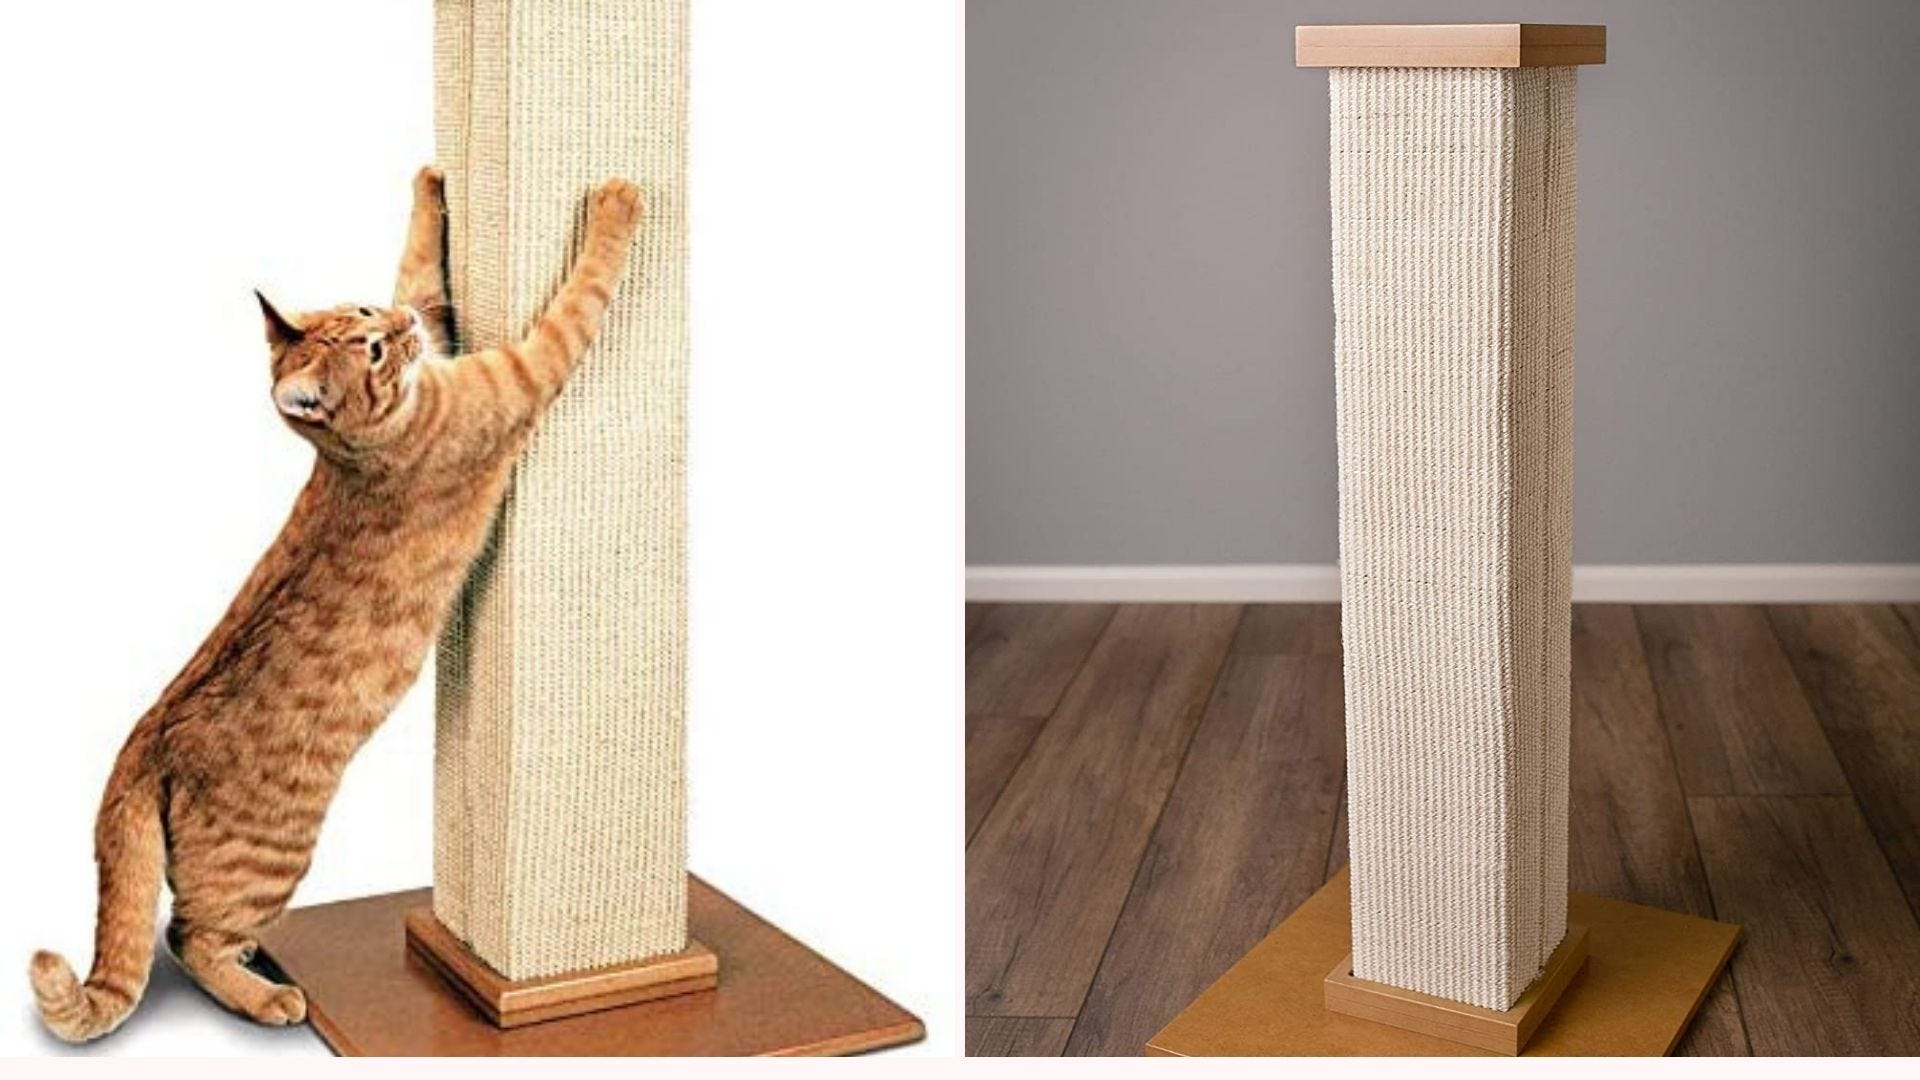 An orange tabby cat stretched out and scratching the SmartCat Pioneer Scratching Post, and the post set up on a hardwood floor.